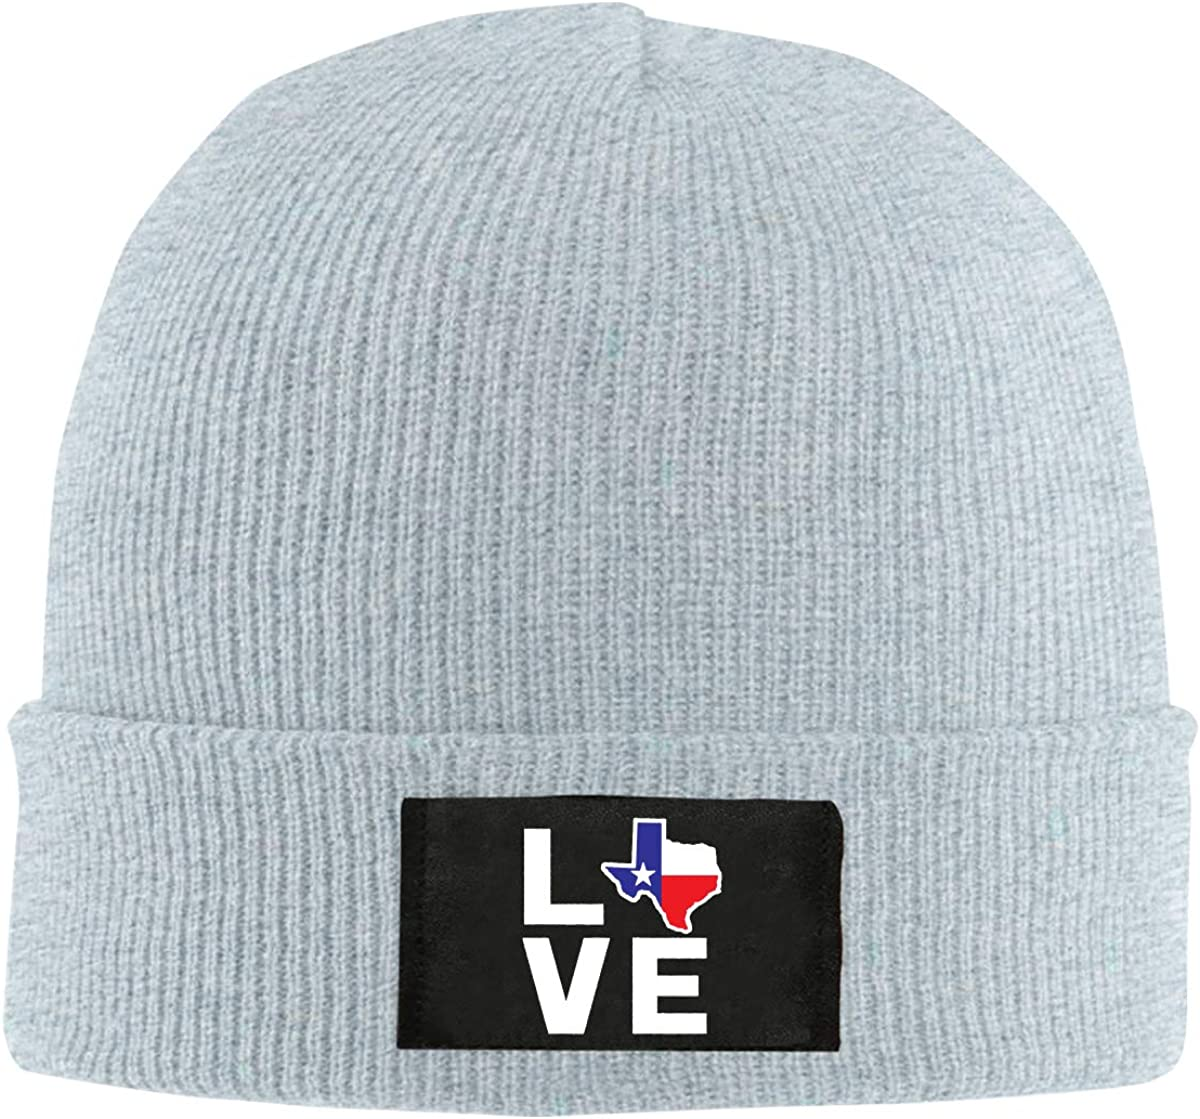 Unisex Love Texas Map Knitting Hat 100/% Acrylic Fashion Skiing Cap